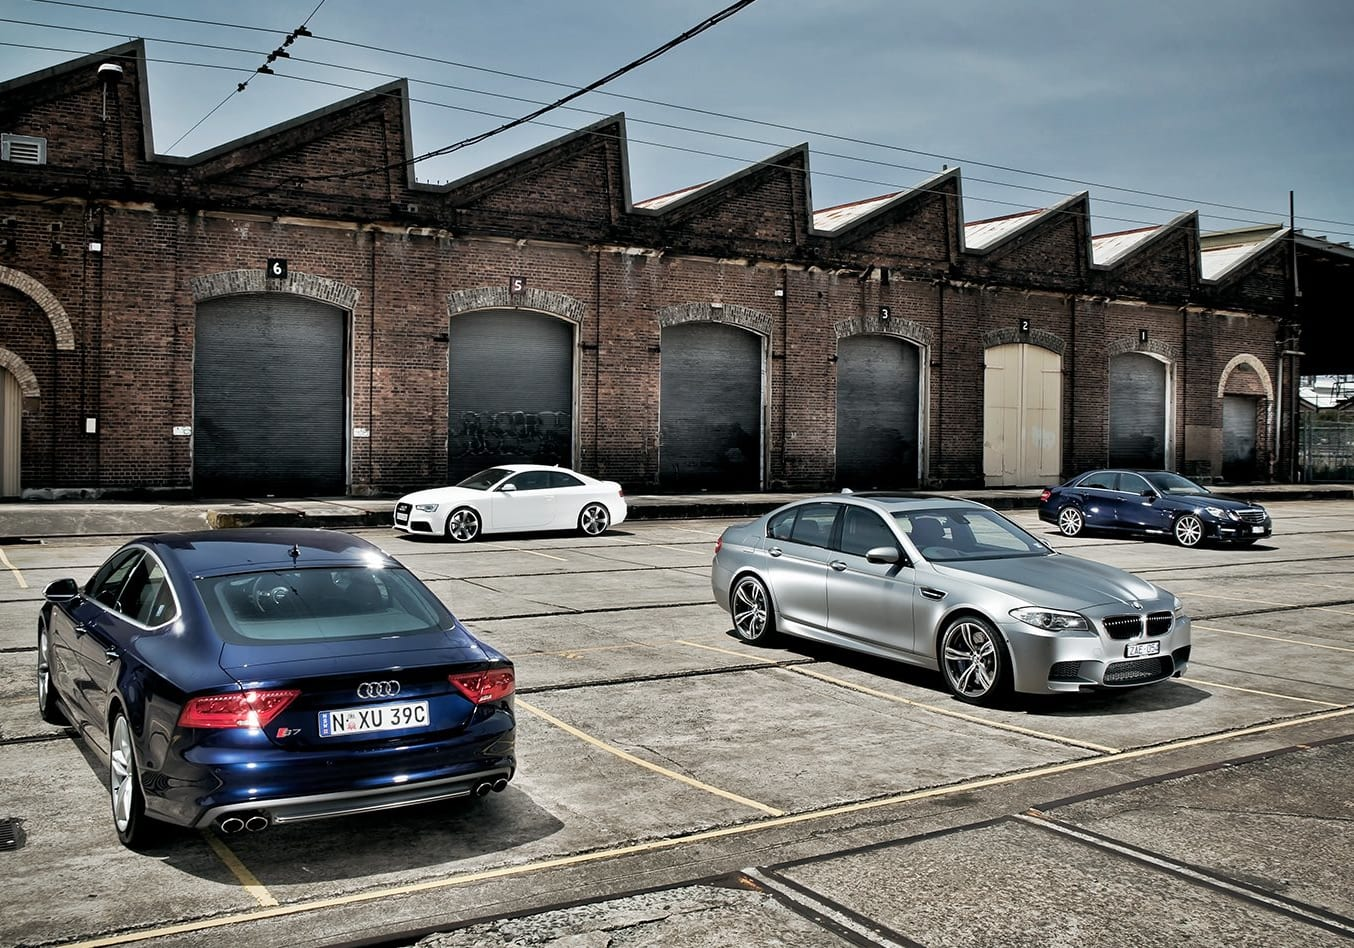 Audi S7 BMW M5 Mercedes Benz E63 Audi RS5 at Performance Car of the Year 2012